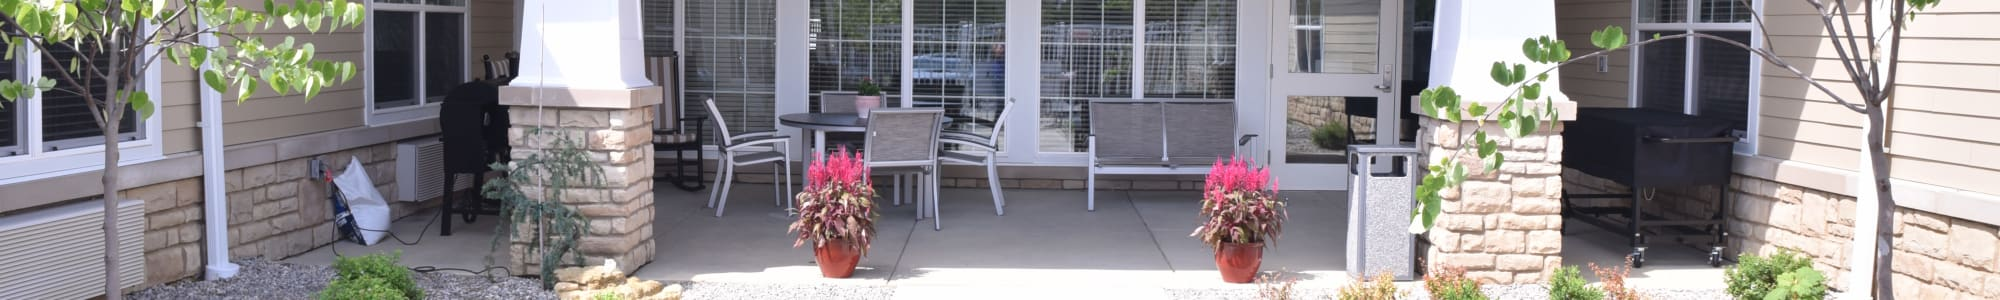 Outdoor patio with seating at Gahanna in Columbus, Ohio.